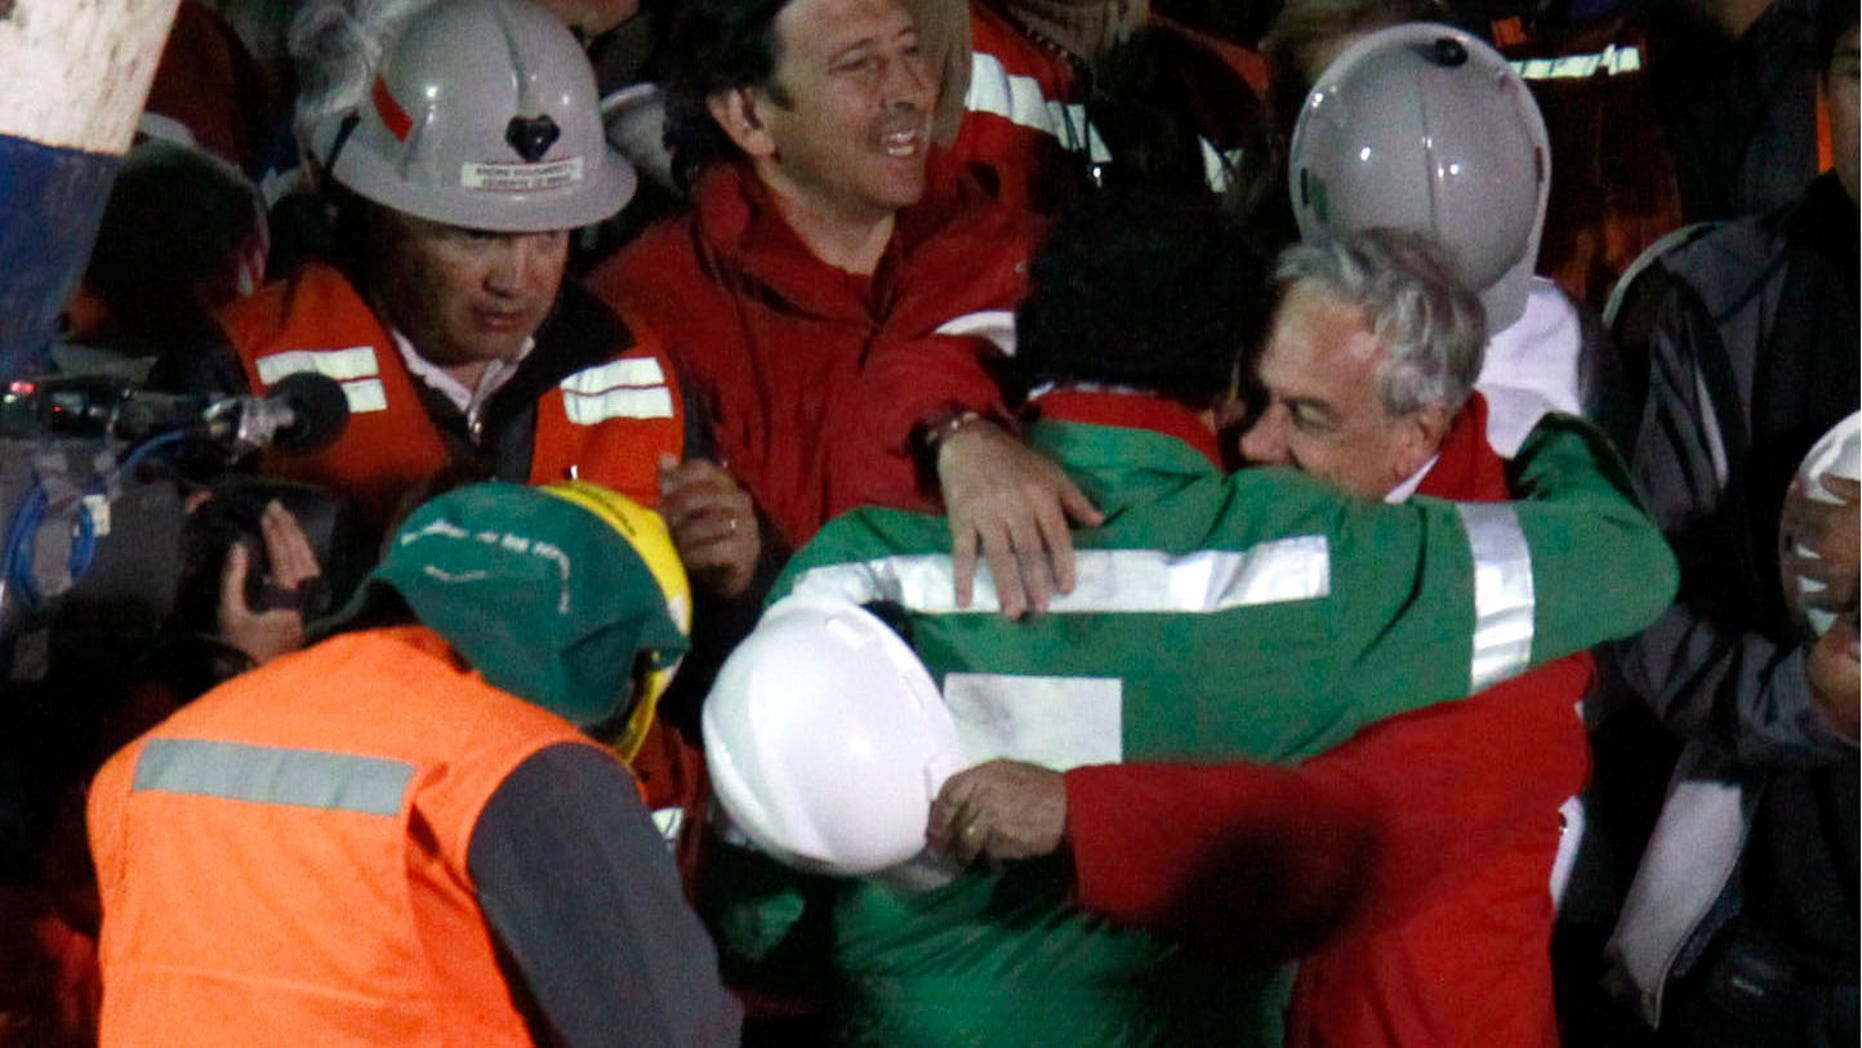 The last rescued miner, Luis Urzua, center wearing green, hugs Chile's President Sebastian Pinera after being rescued from the collapsed San Jose gold and copper mine where he had been trapped with 32 other miners for over two months near Copiapo, Chile, Wednesday Oct. 13, 2010. The 69-day underground ordeal reached its end Wednesday night after 33 trapped miners were hauled up in a cage through a narrow hole drilled through 2,000 feet of rock. (AP Photo/Roberto Candia)